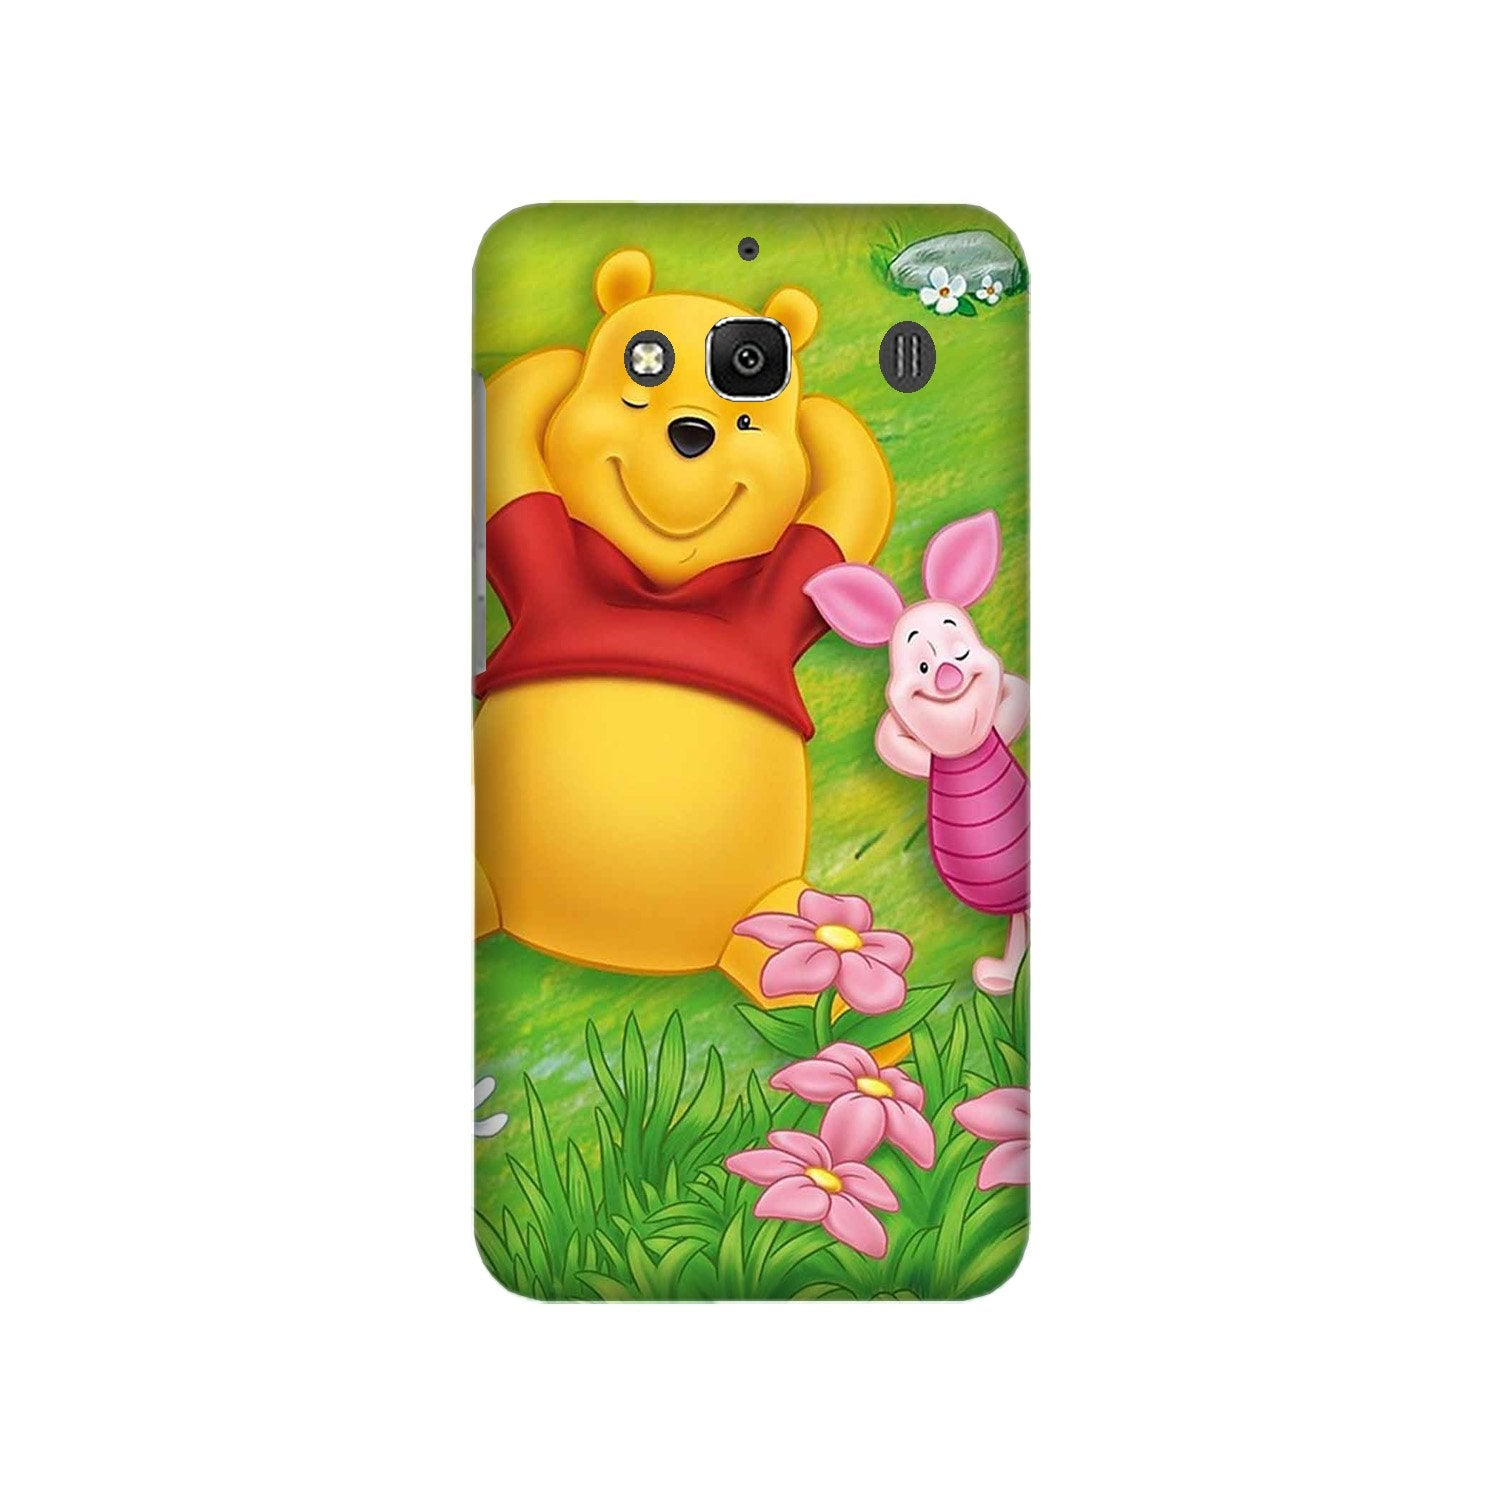 Winnie The Pooh Mobile Back Case for Redmi 2 Prime  (Design - 348)